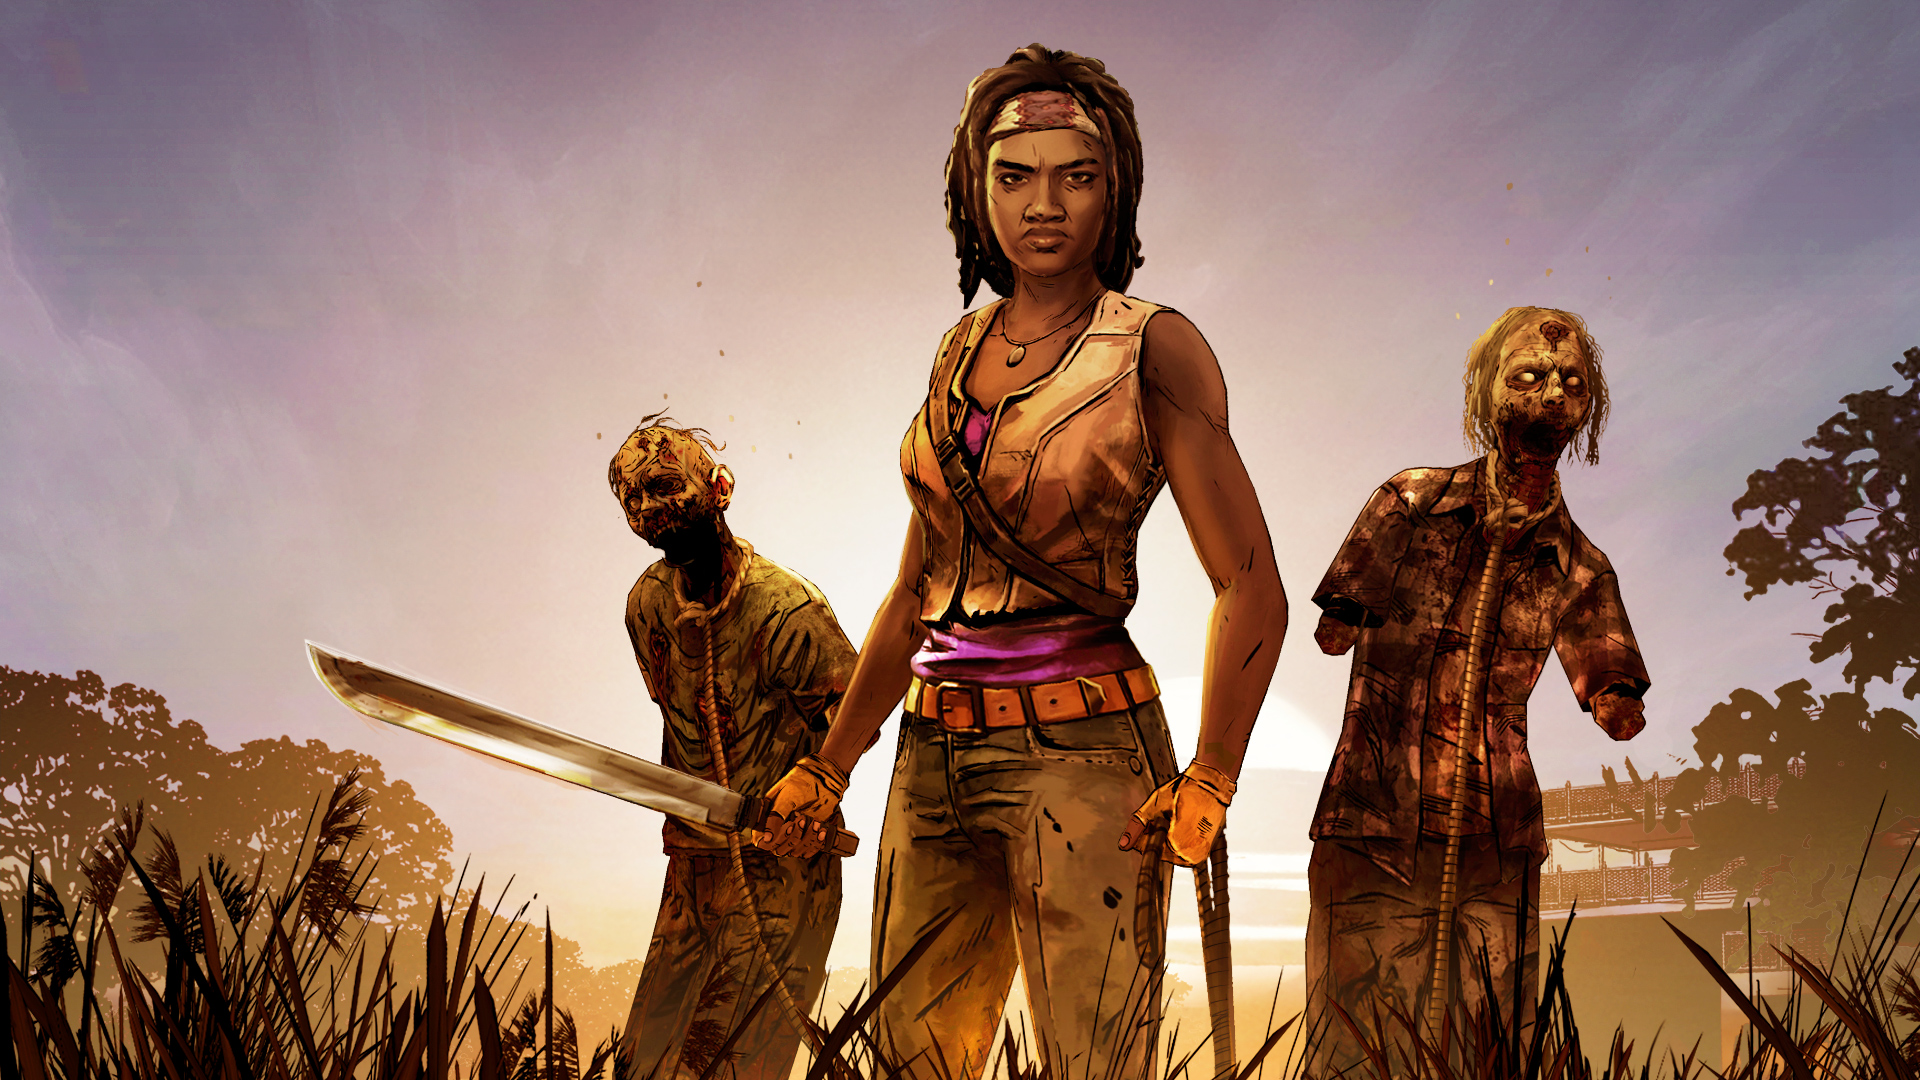 Pubg Wallpaper Hd Reddit The Walking Dead Michonne Episode One Gets A Release